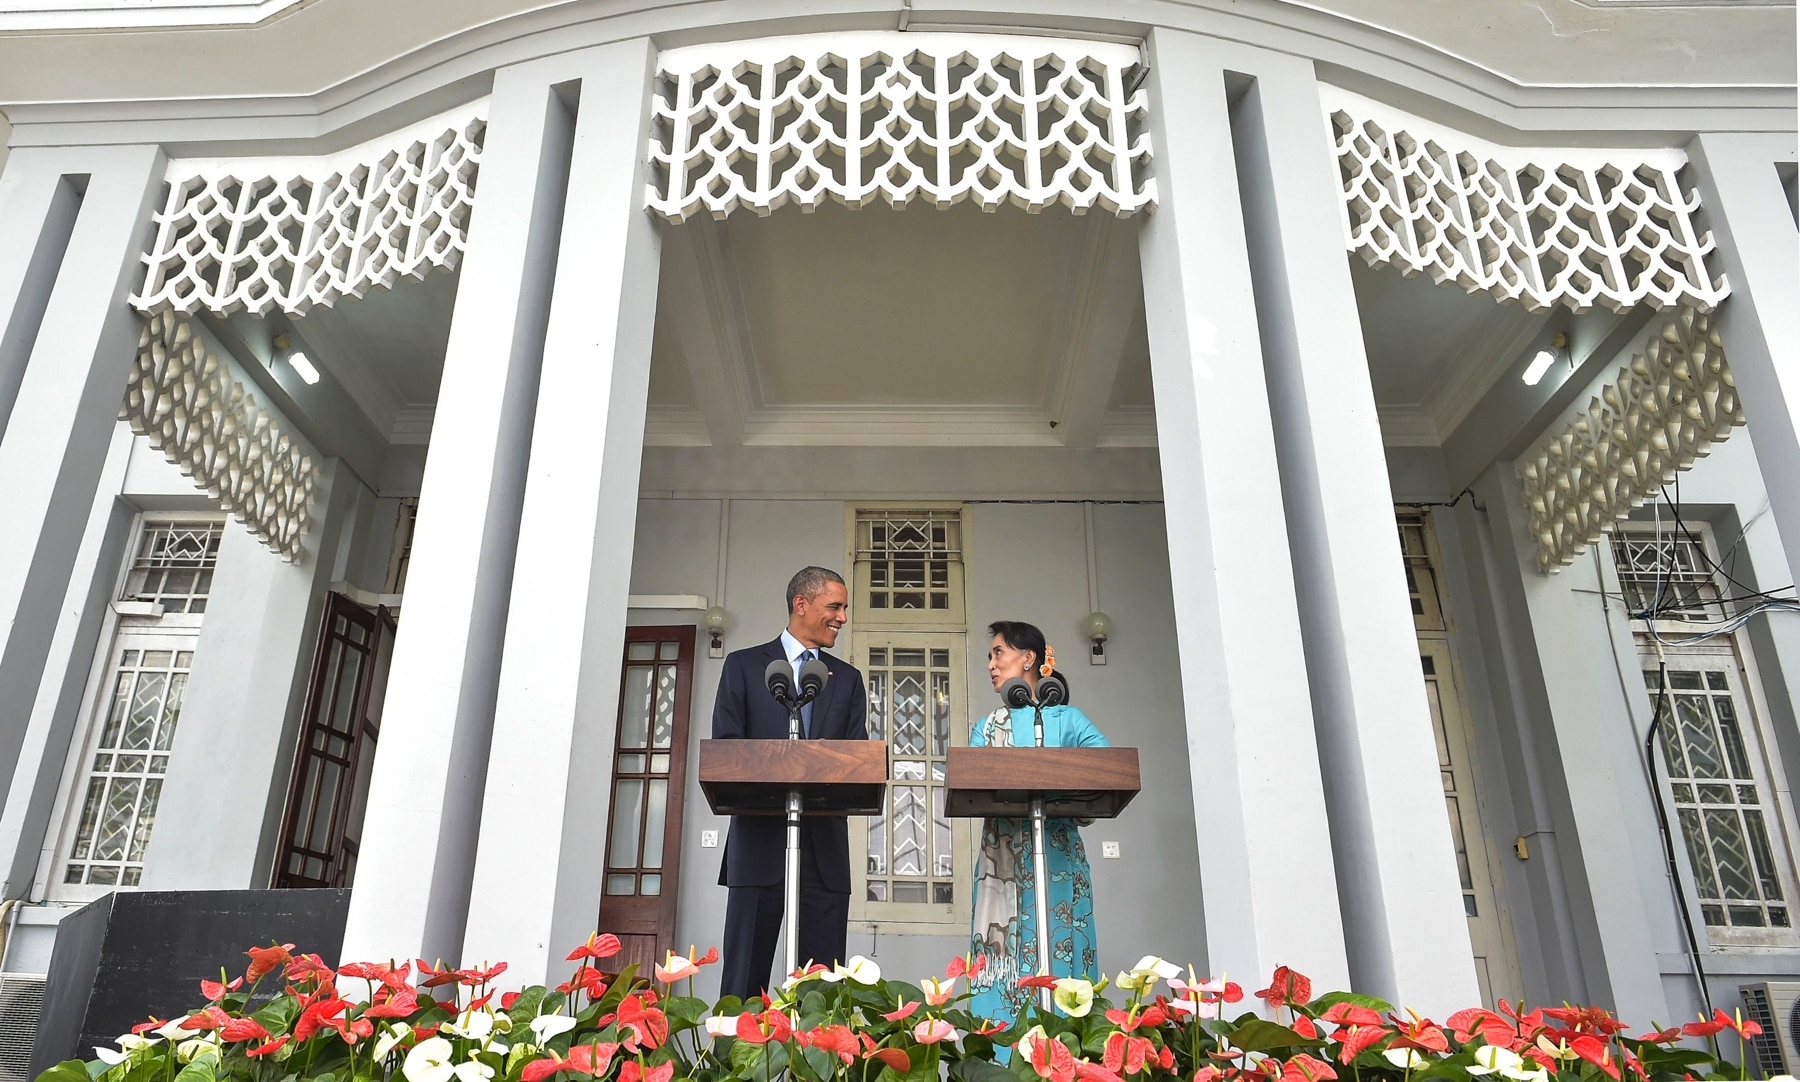 President Obama and Aung San Suu Kyi at podiums on porch of building with white columns (© Getty Images/Mandel Ngan)